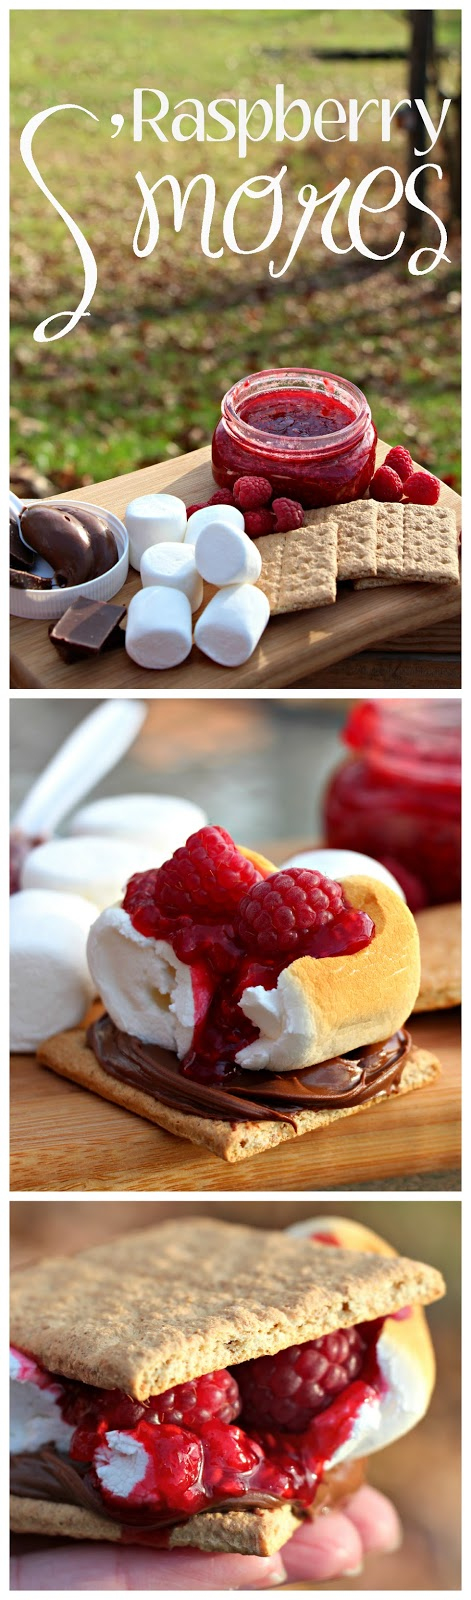 Family Glamping Weekend - Grilled Pizza and Raspberry S'mores | #Glamping #Camping #CampingRecipes #Smores S'mores Raspberry Sauce